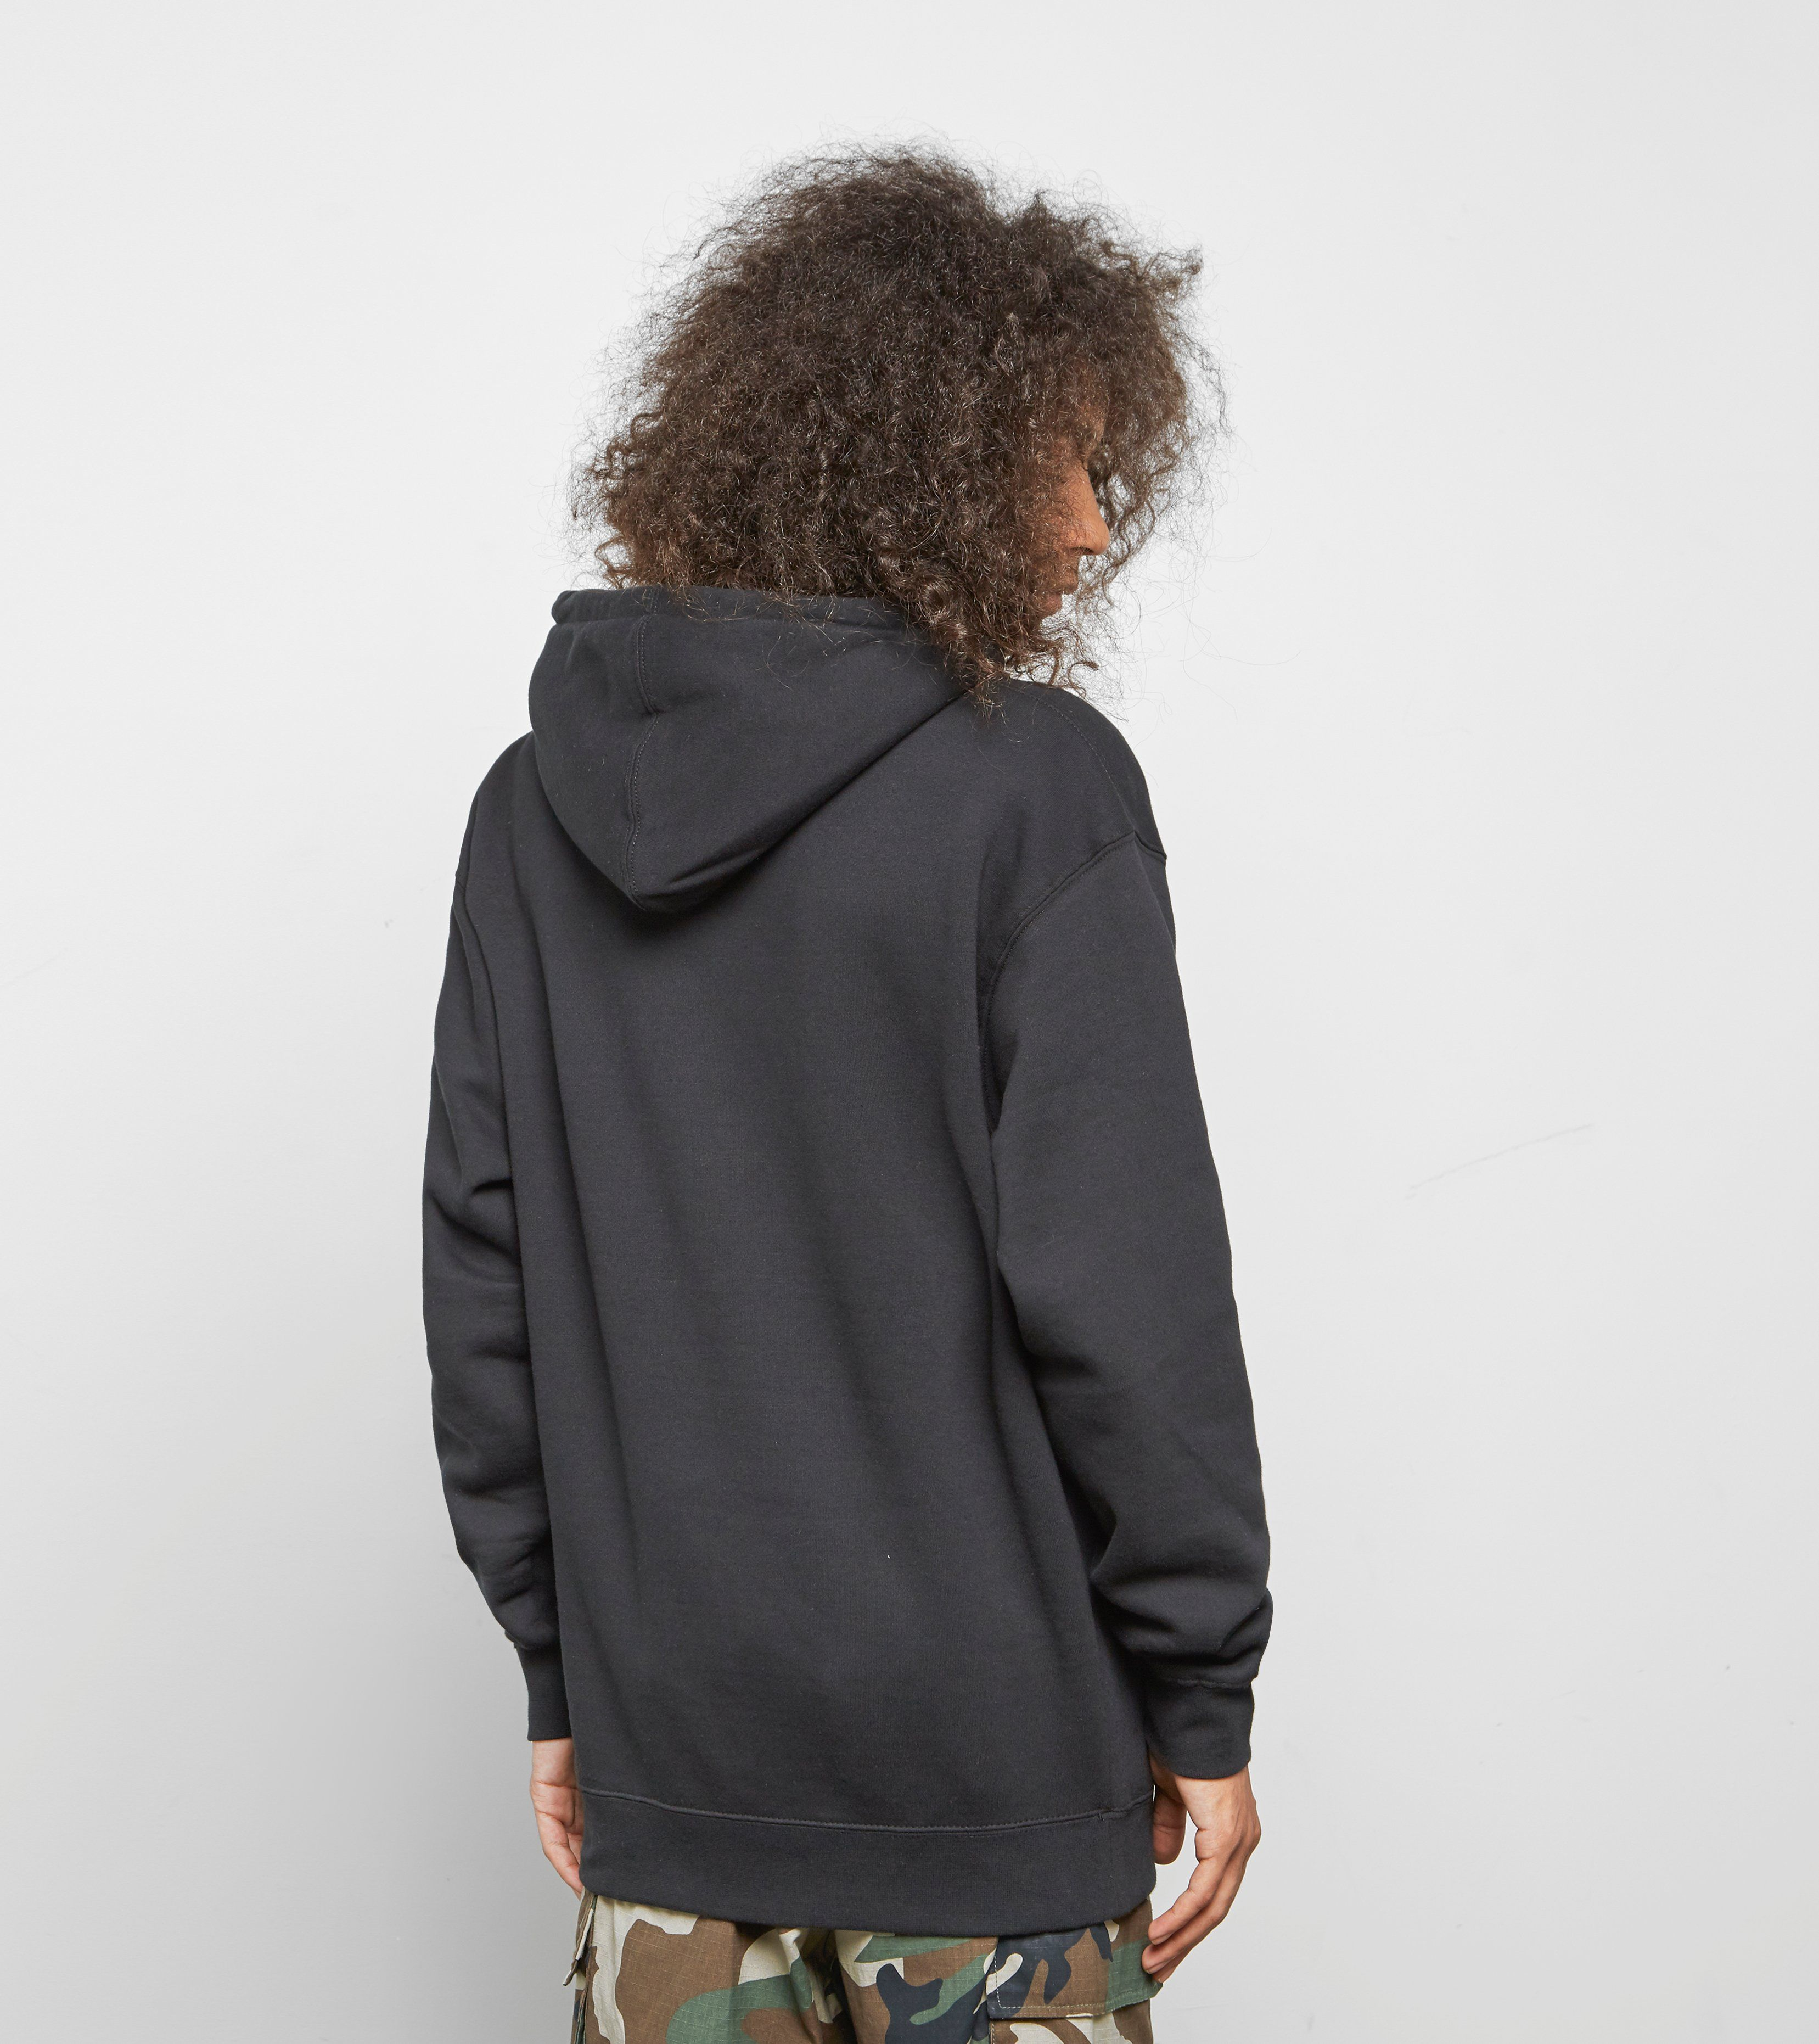 Obey House of Obey Hoody - size? exclusive